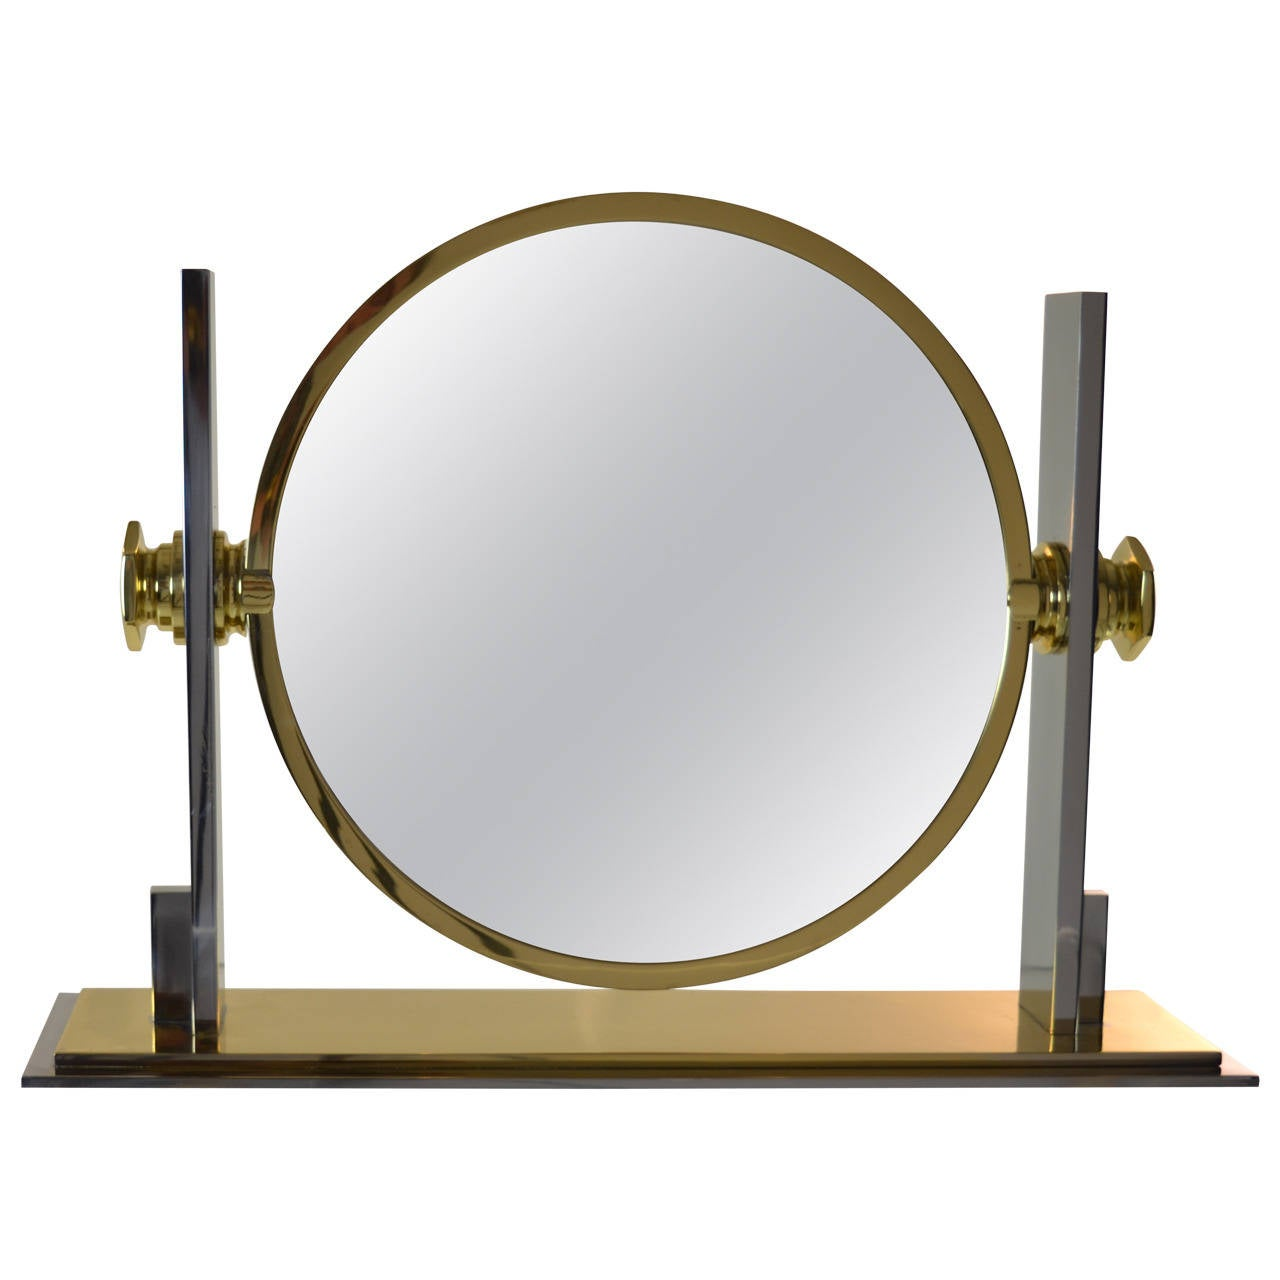 karl springer large vanity mirror at 1stdibs